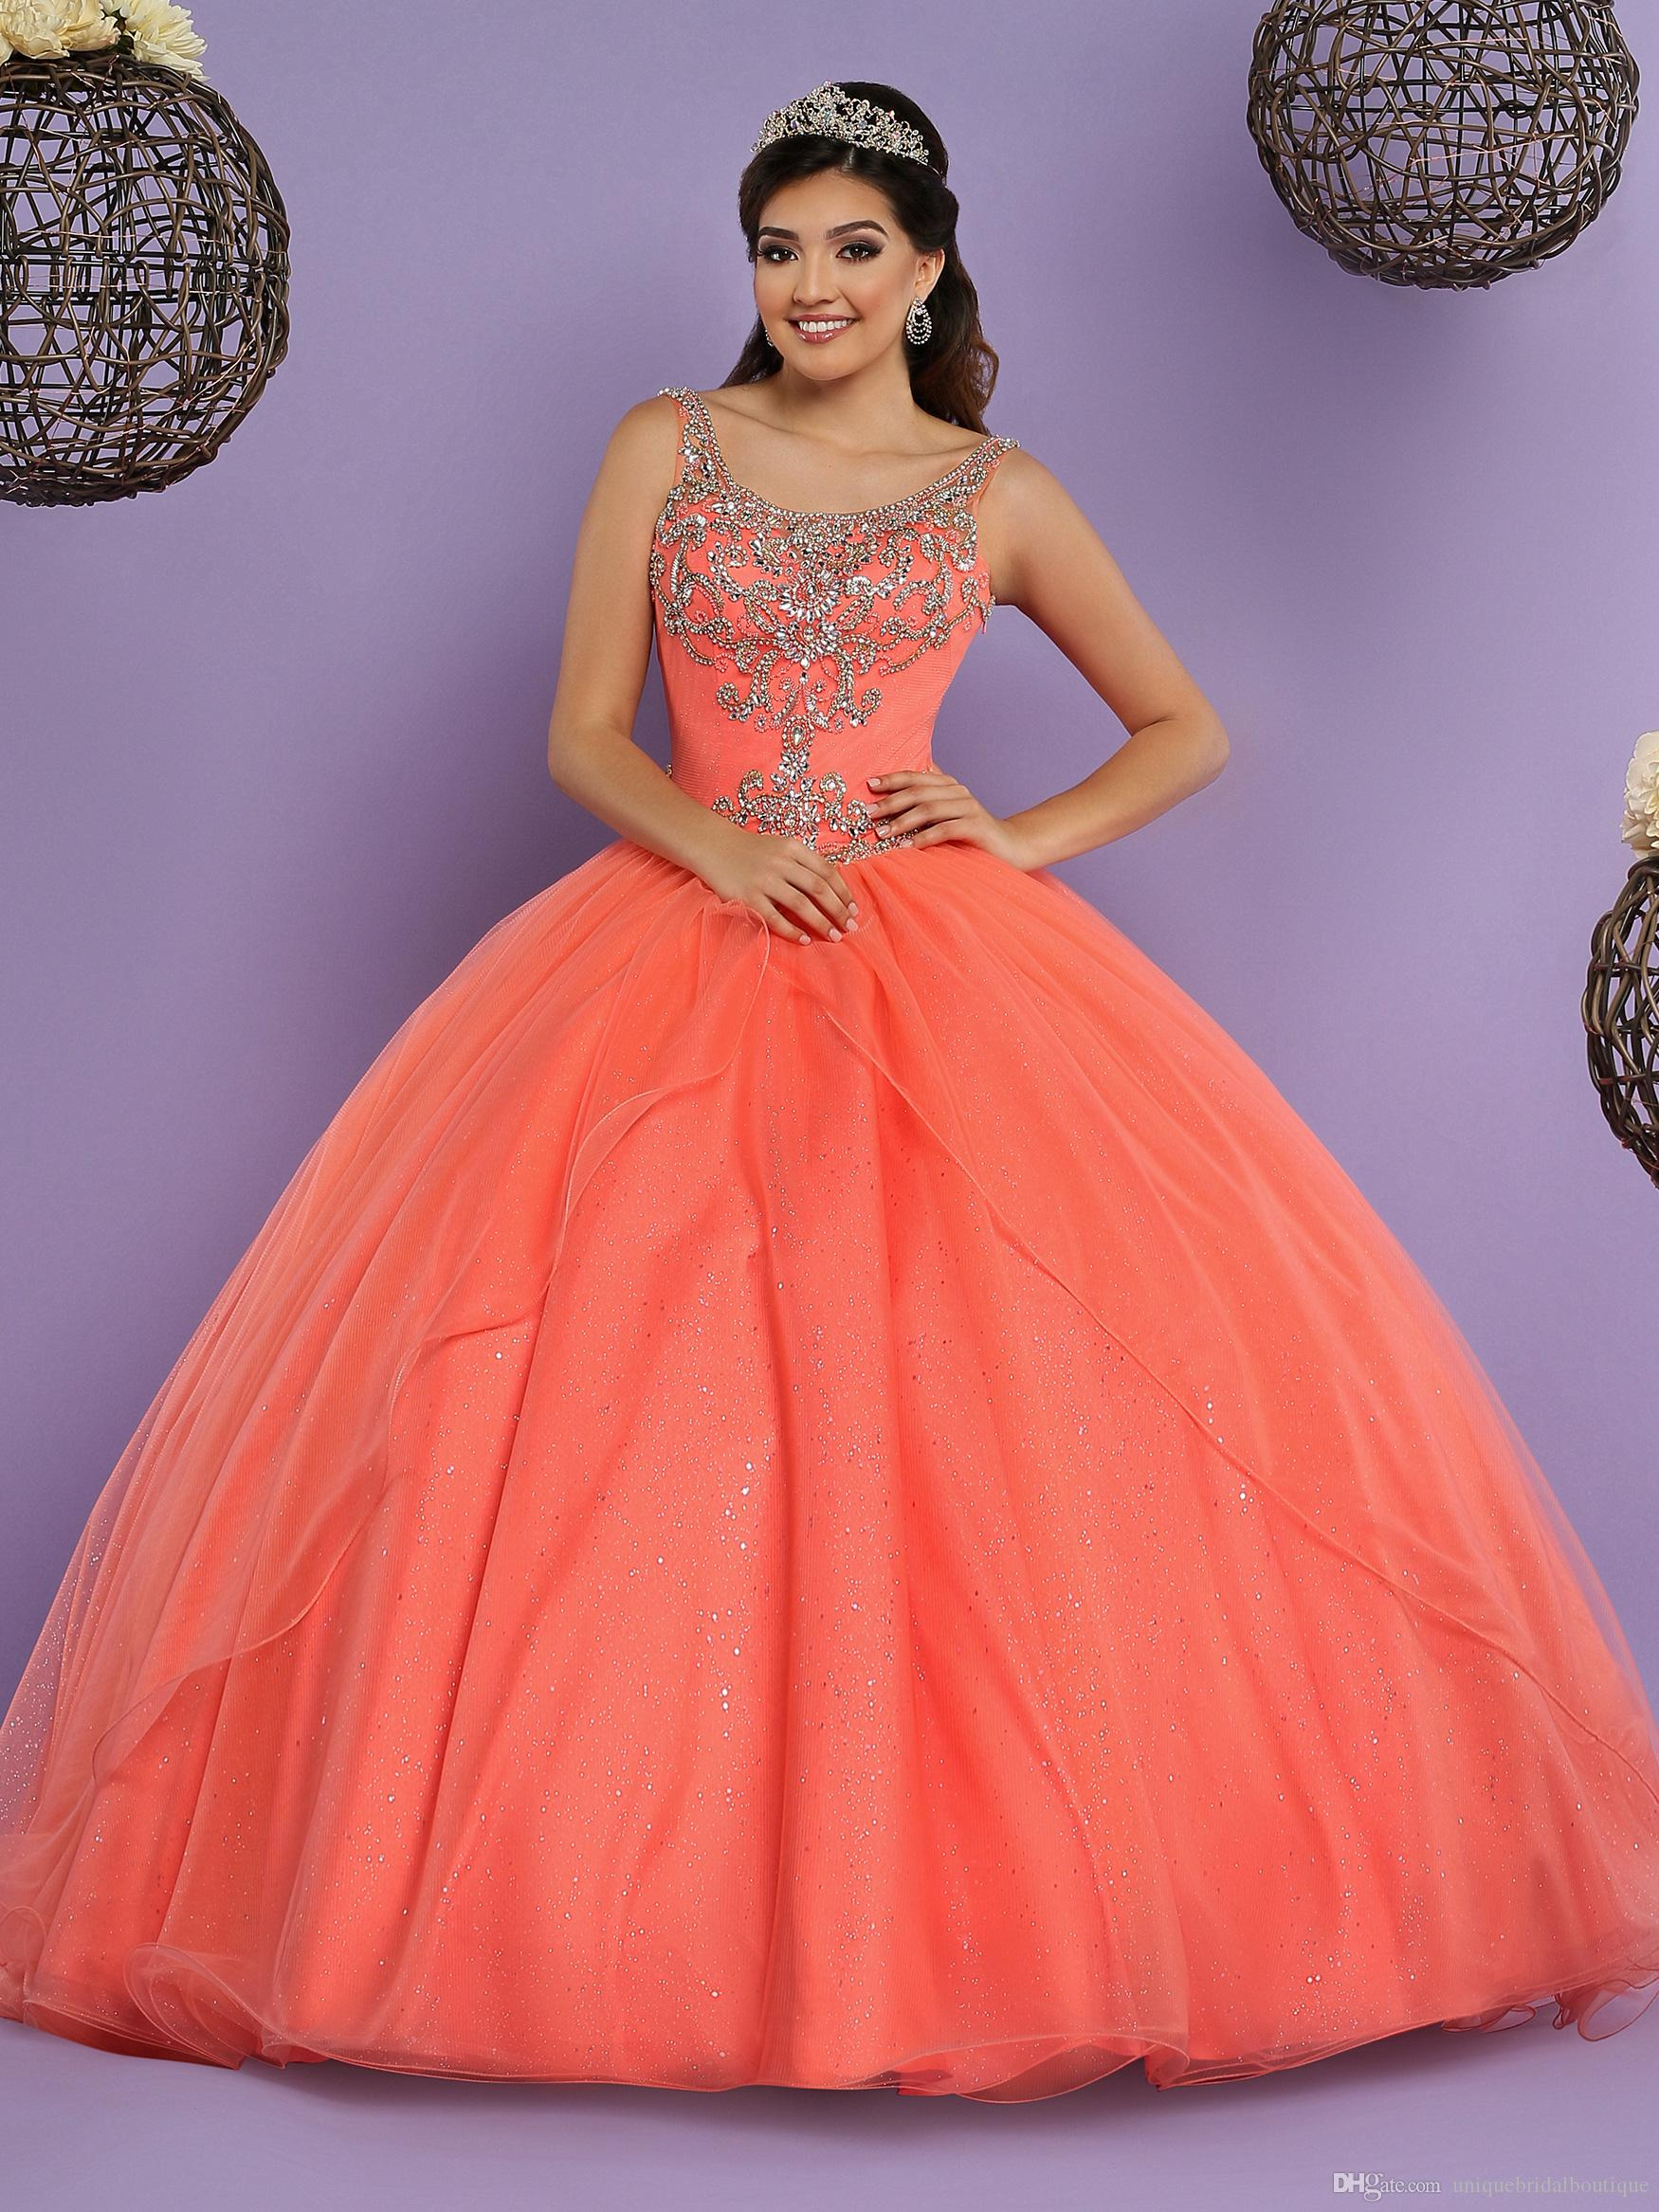 5079b10305e Coral Quinceanera Dresses 2017 with Free Bolero Beautiful Sweet 15 Dress  Lace Up Back   Scoop Neck Shiny Crystals Rhinestones Ballgown Prom